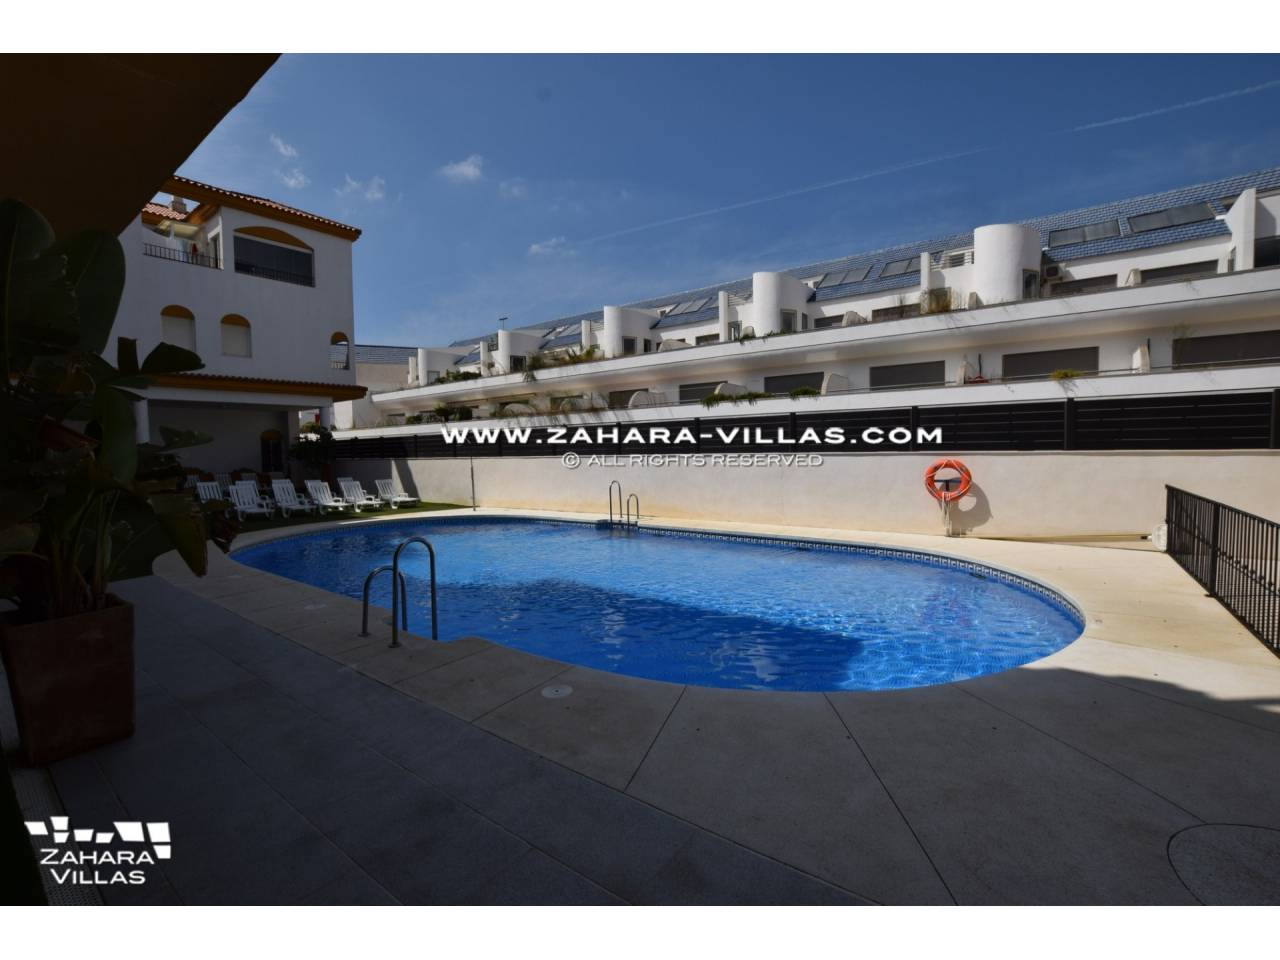 Imagen 5 de Amazing Apartment for sale in Zahara de los Atunes